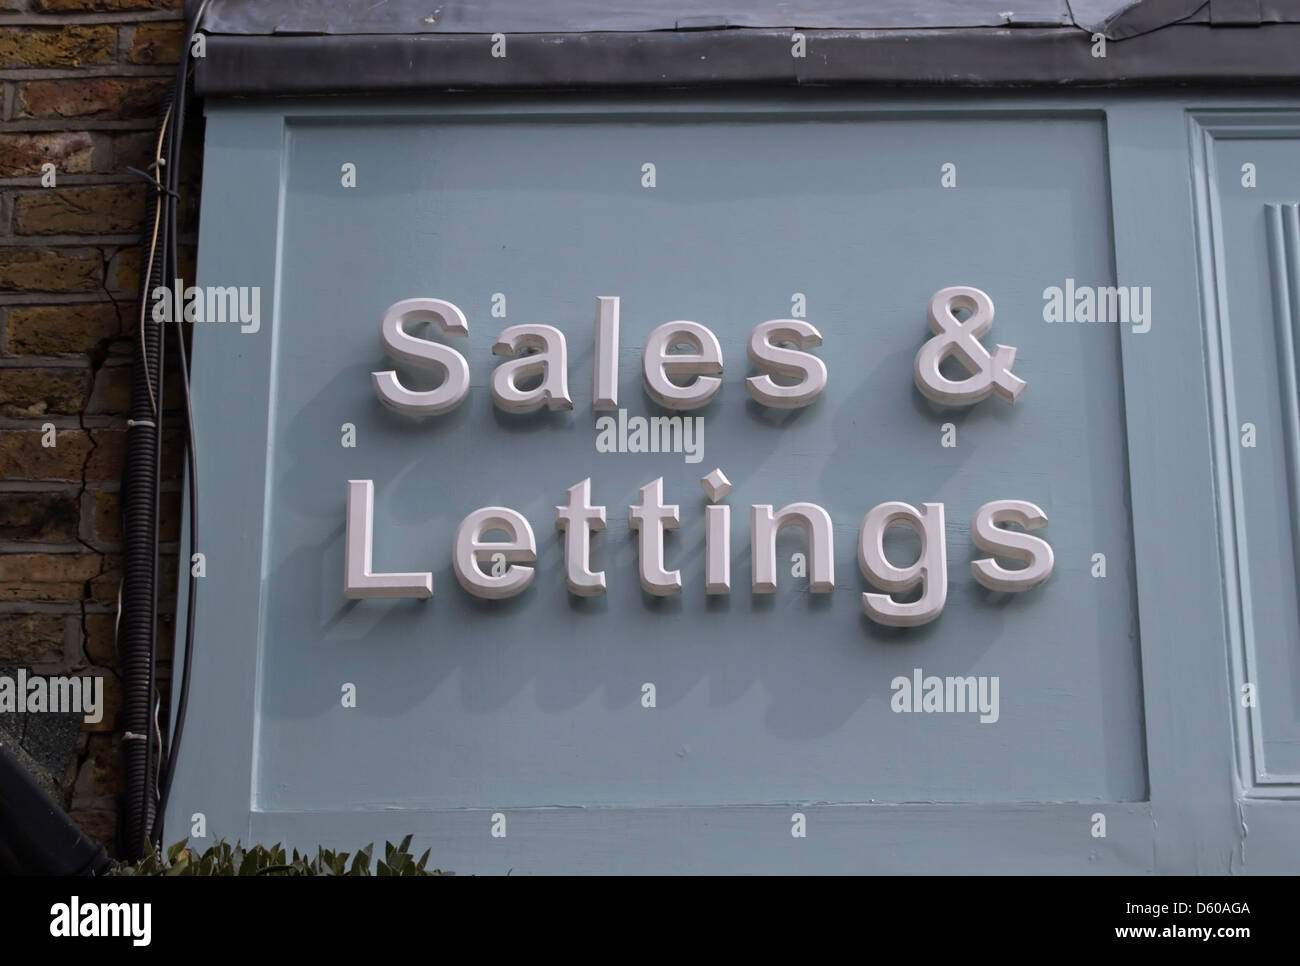 sales and lettings sign outside an estate agents in teddington, middlesex, england - Stock Image